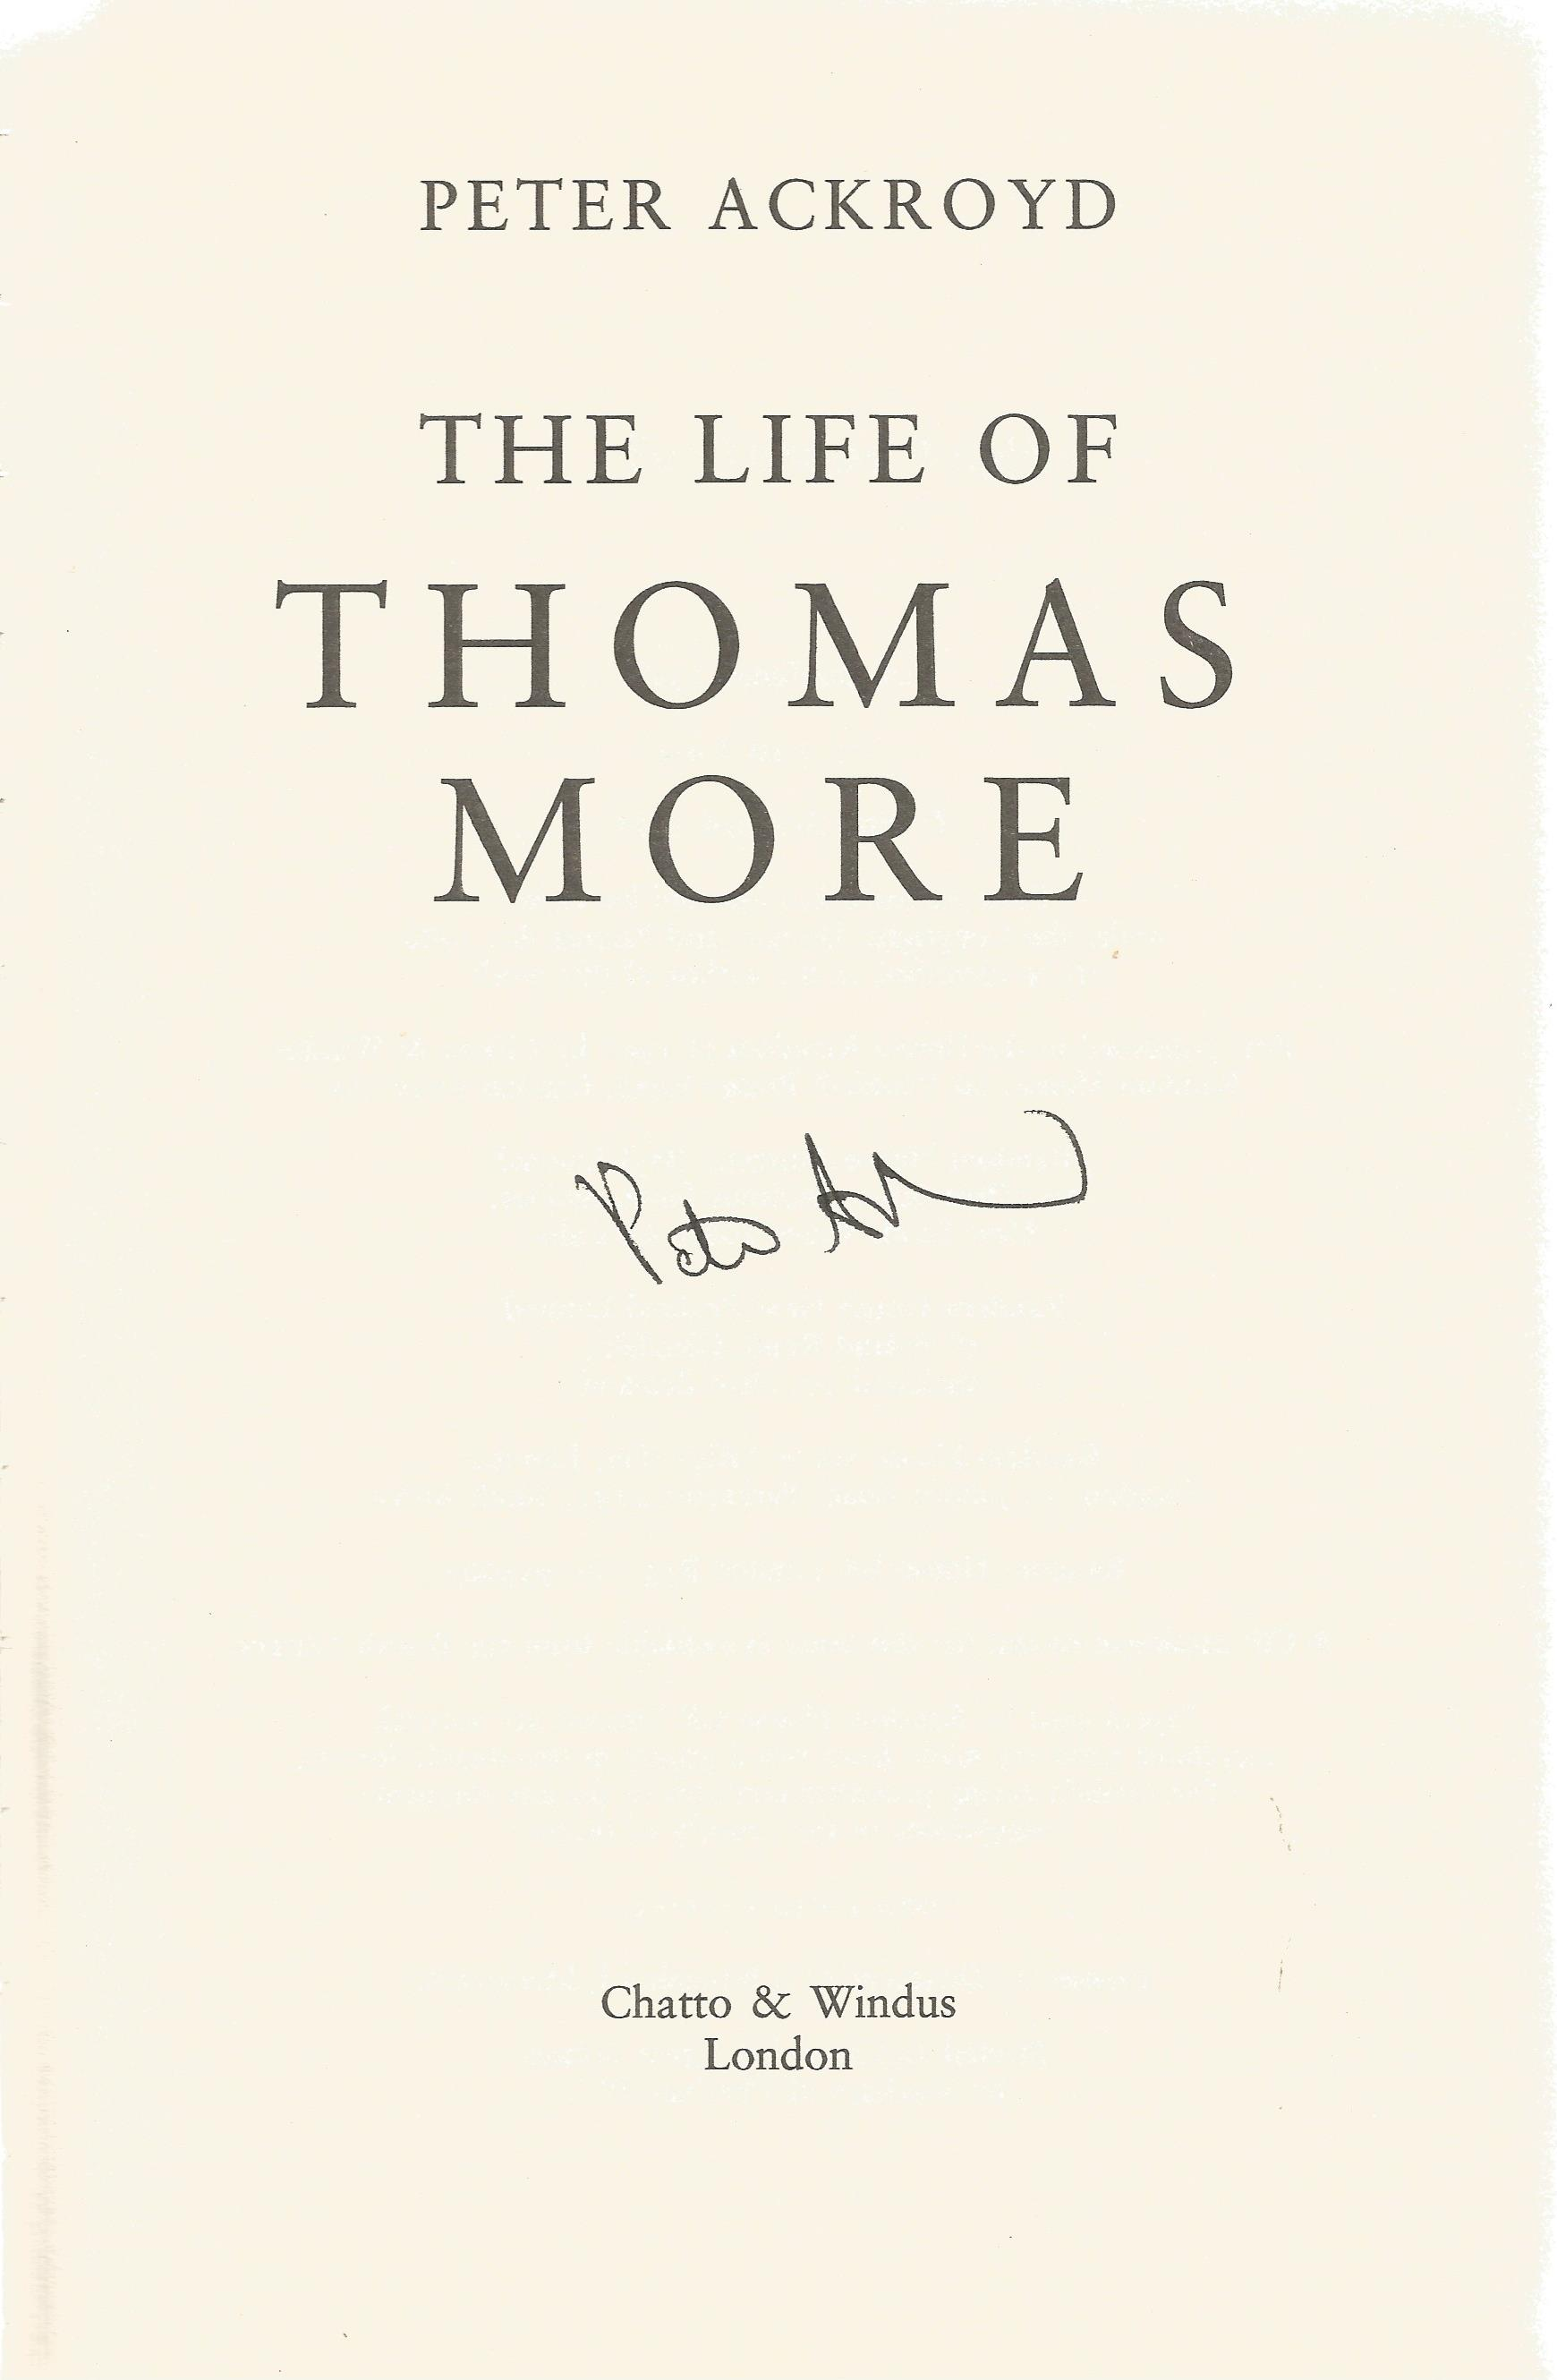 Peter Ackroyd Hardback Book The Life of Thomas More signed by the Author on the Title Page First - Image 2 of 2